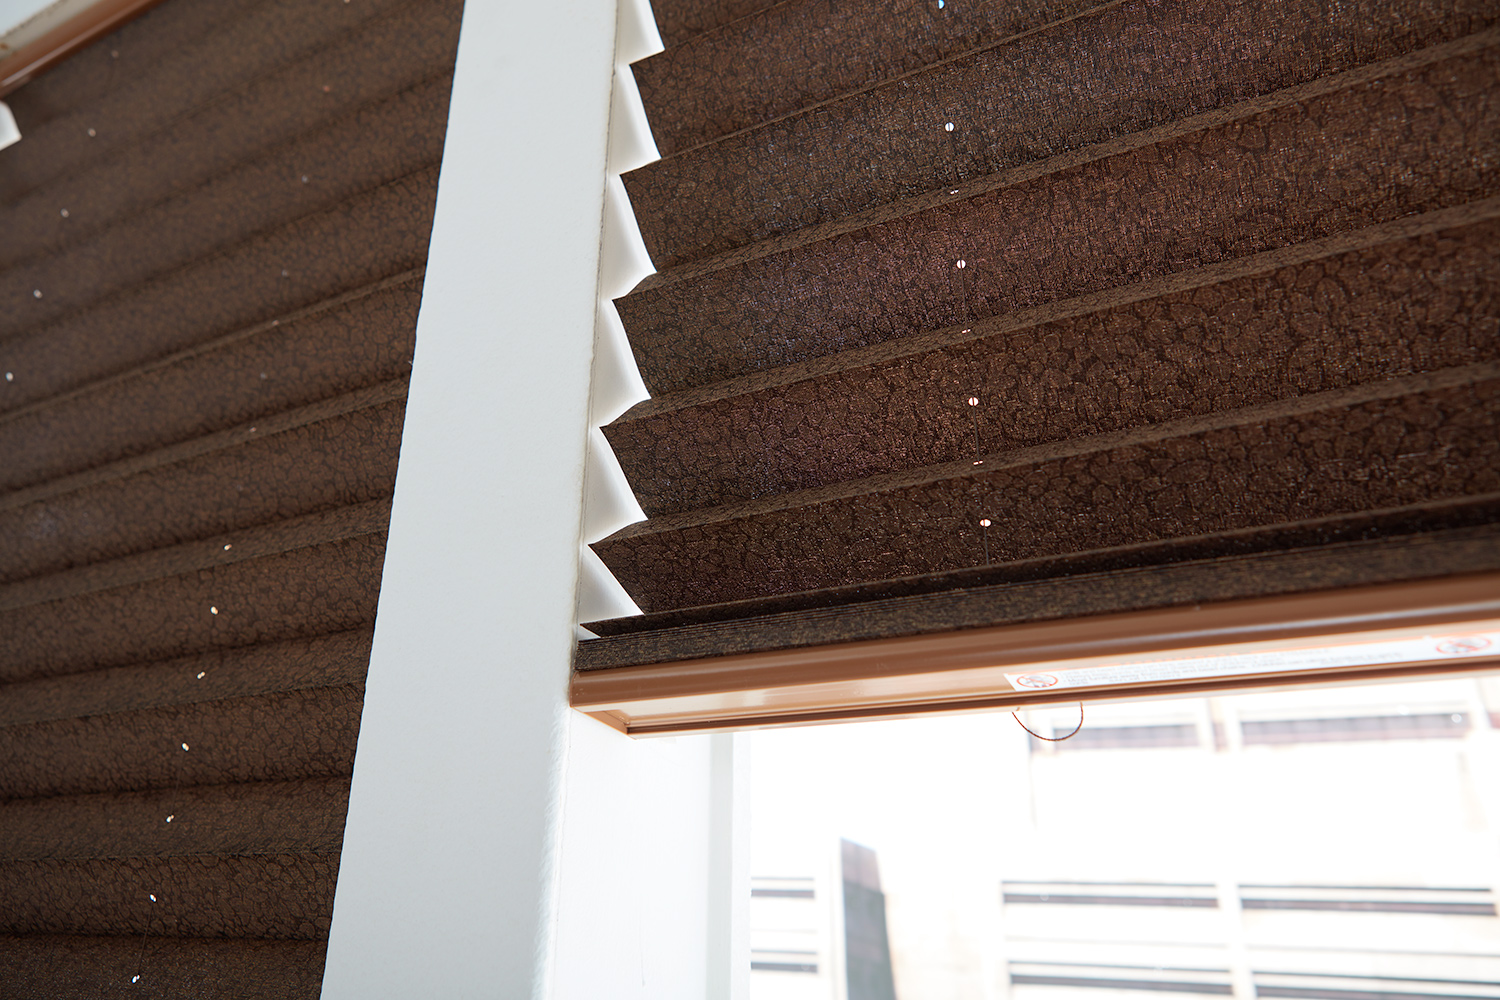 closeup of brown fabric pleated shades